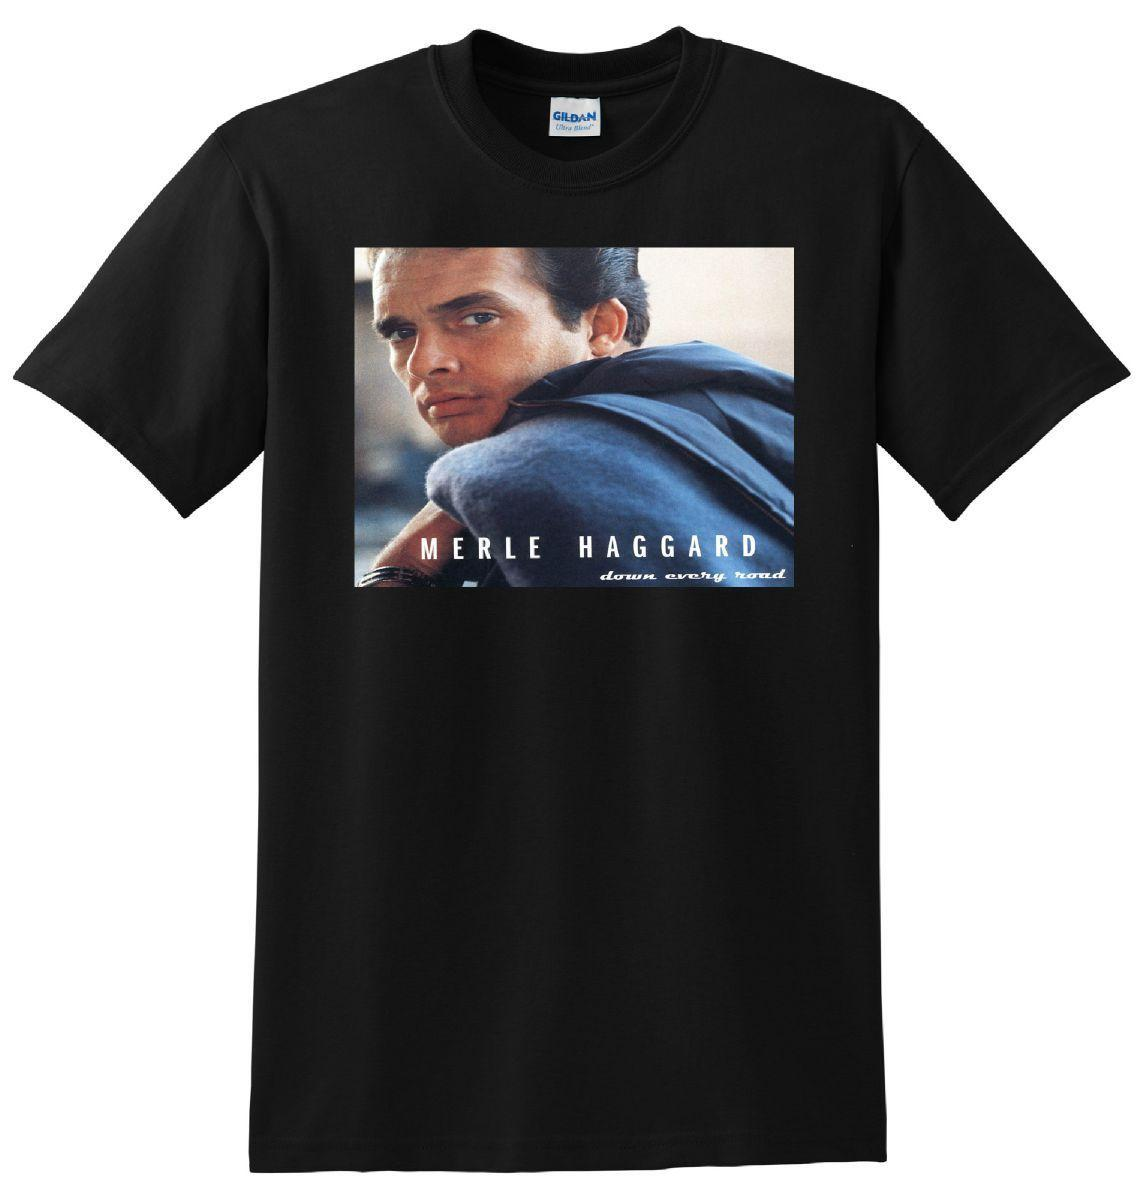 33078004b MERLE HAGGARD T SHIRT Down Every Road Vinyl Cd Cover Funny Unisex Casual  Gift Funny Political T Shirts Tee Designs From Lukehappy12, $12.81|  DHgate.Com